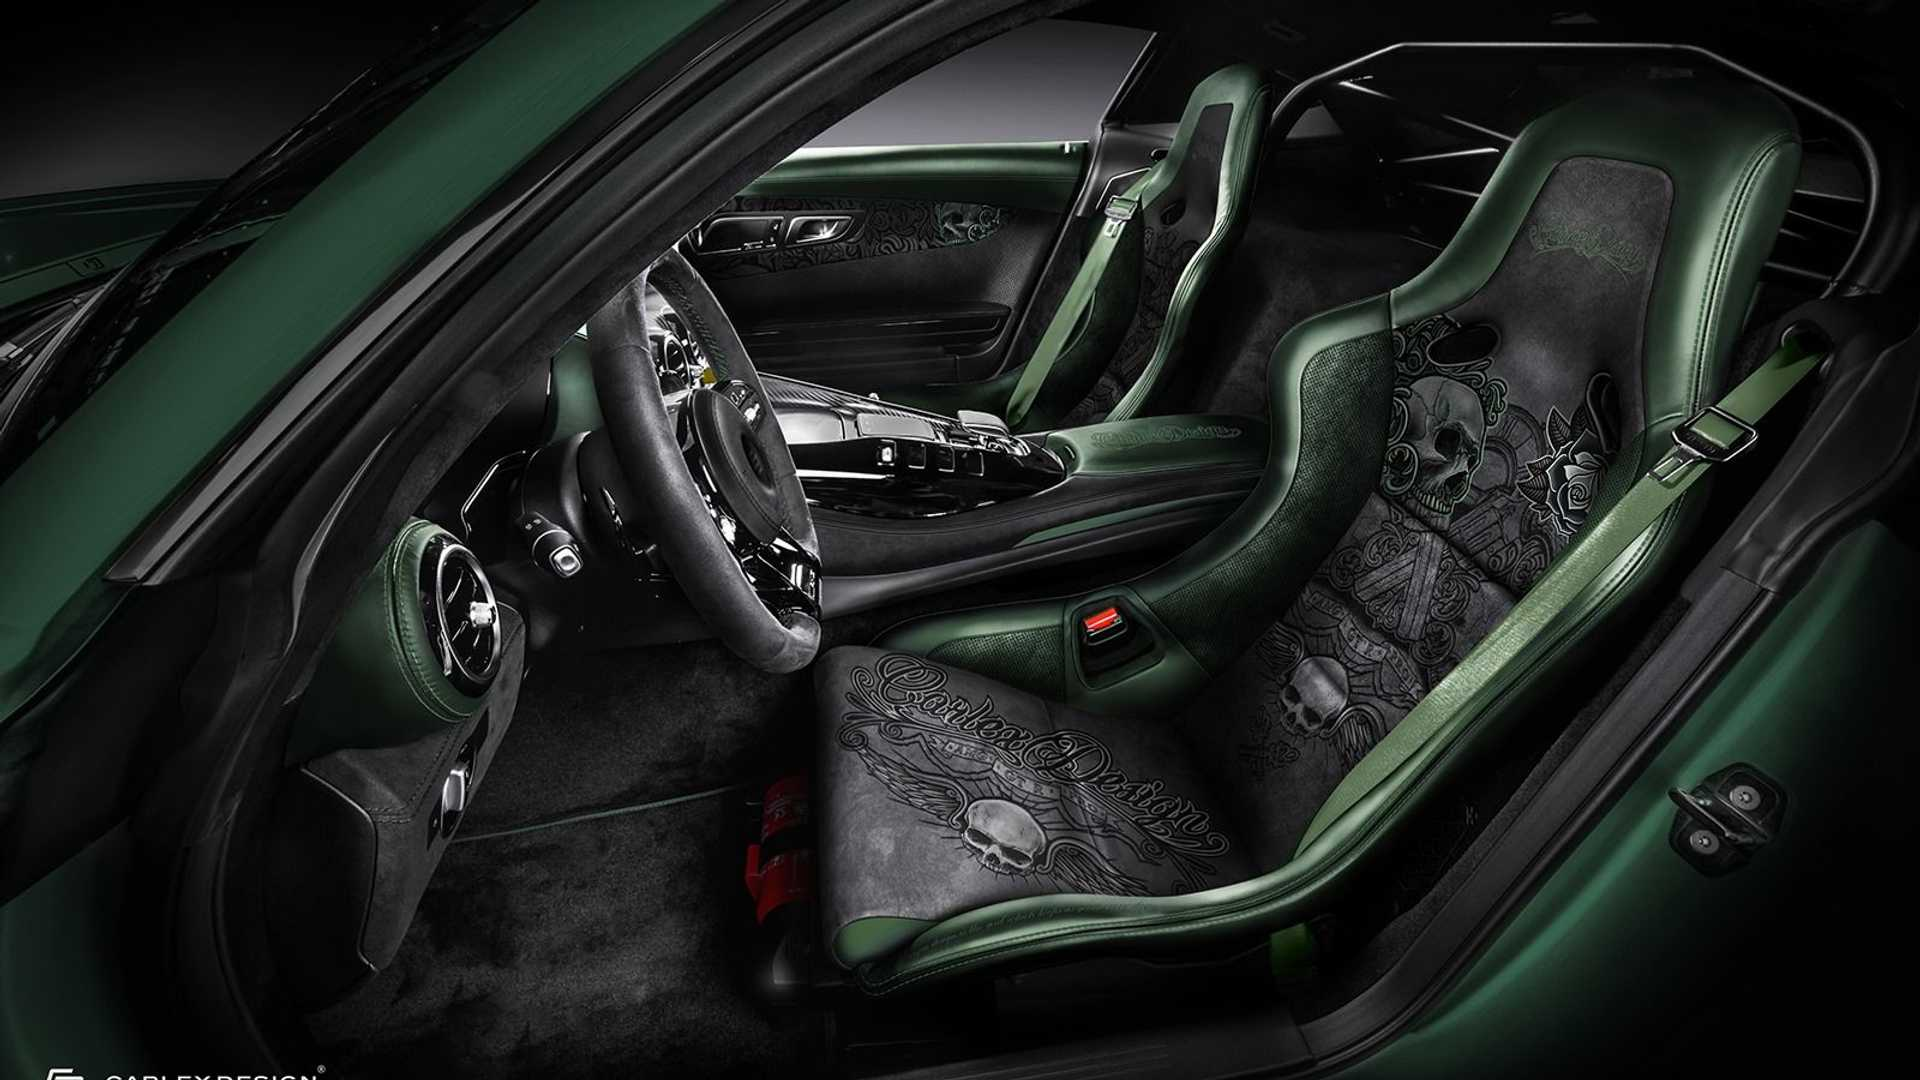 Carlex-Design-Mercedes-AMG-GT-R-Pro-'Tattoo-Edition'.jpg